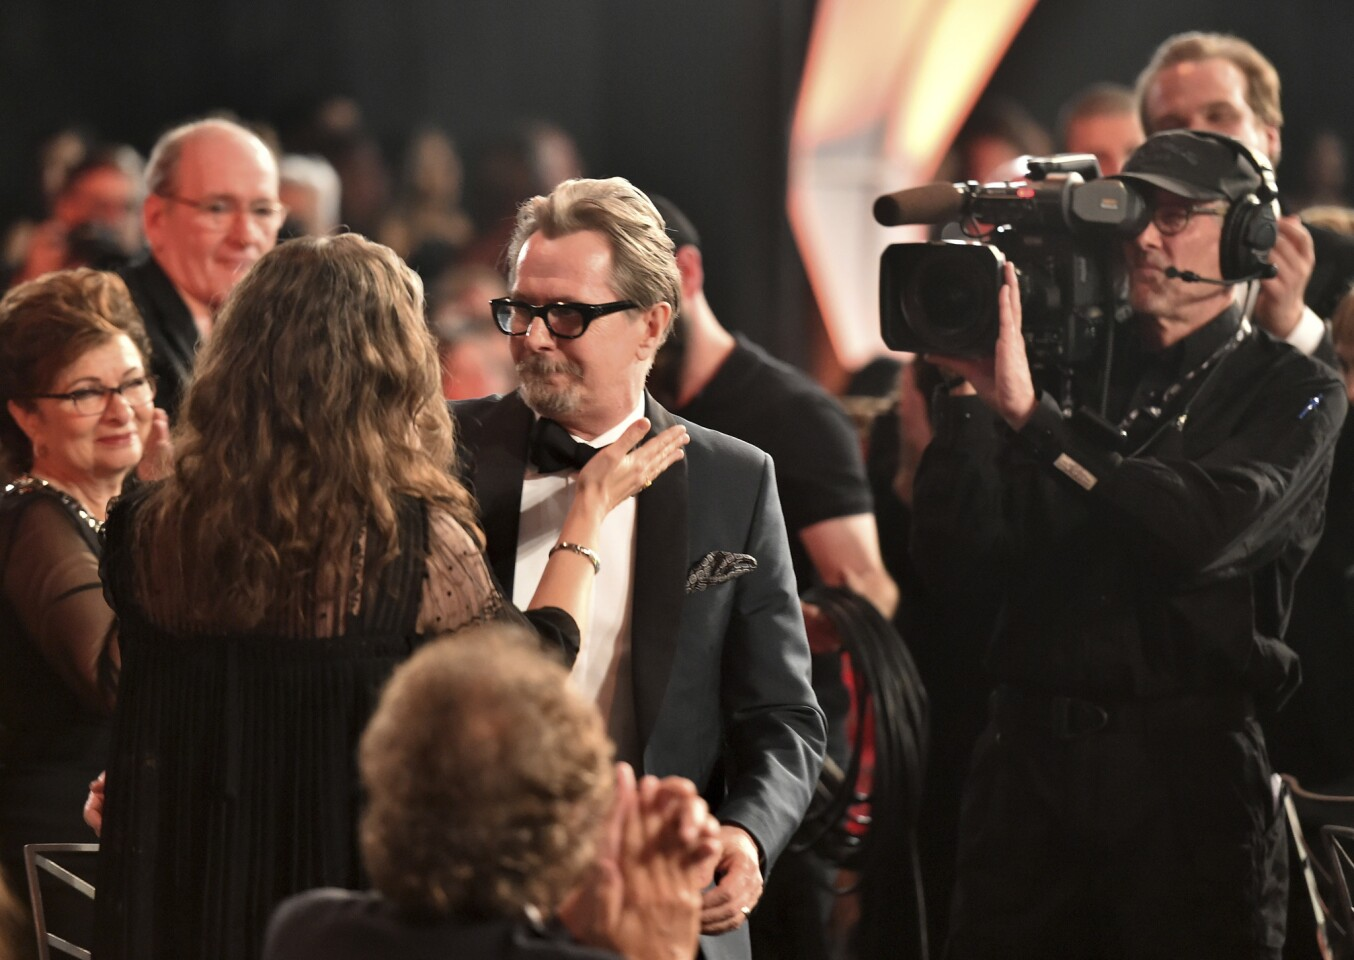 """Gary Oldman is congratulated in the audience as he accepts the award for outstanding performance by a male actor in a leading role for """"Darkest Hour"""" at the 24th annual Screen Actors Guild Awards at the Shrine Auditorium & Expo Hall on Sunday, Jan. 21, 2018, in Los Angeles."""